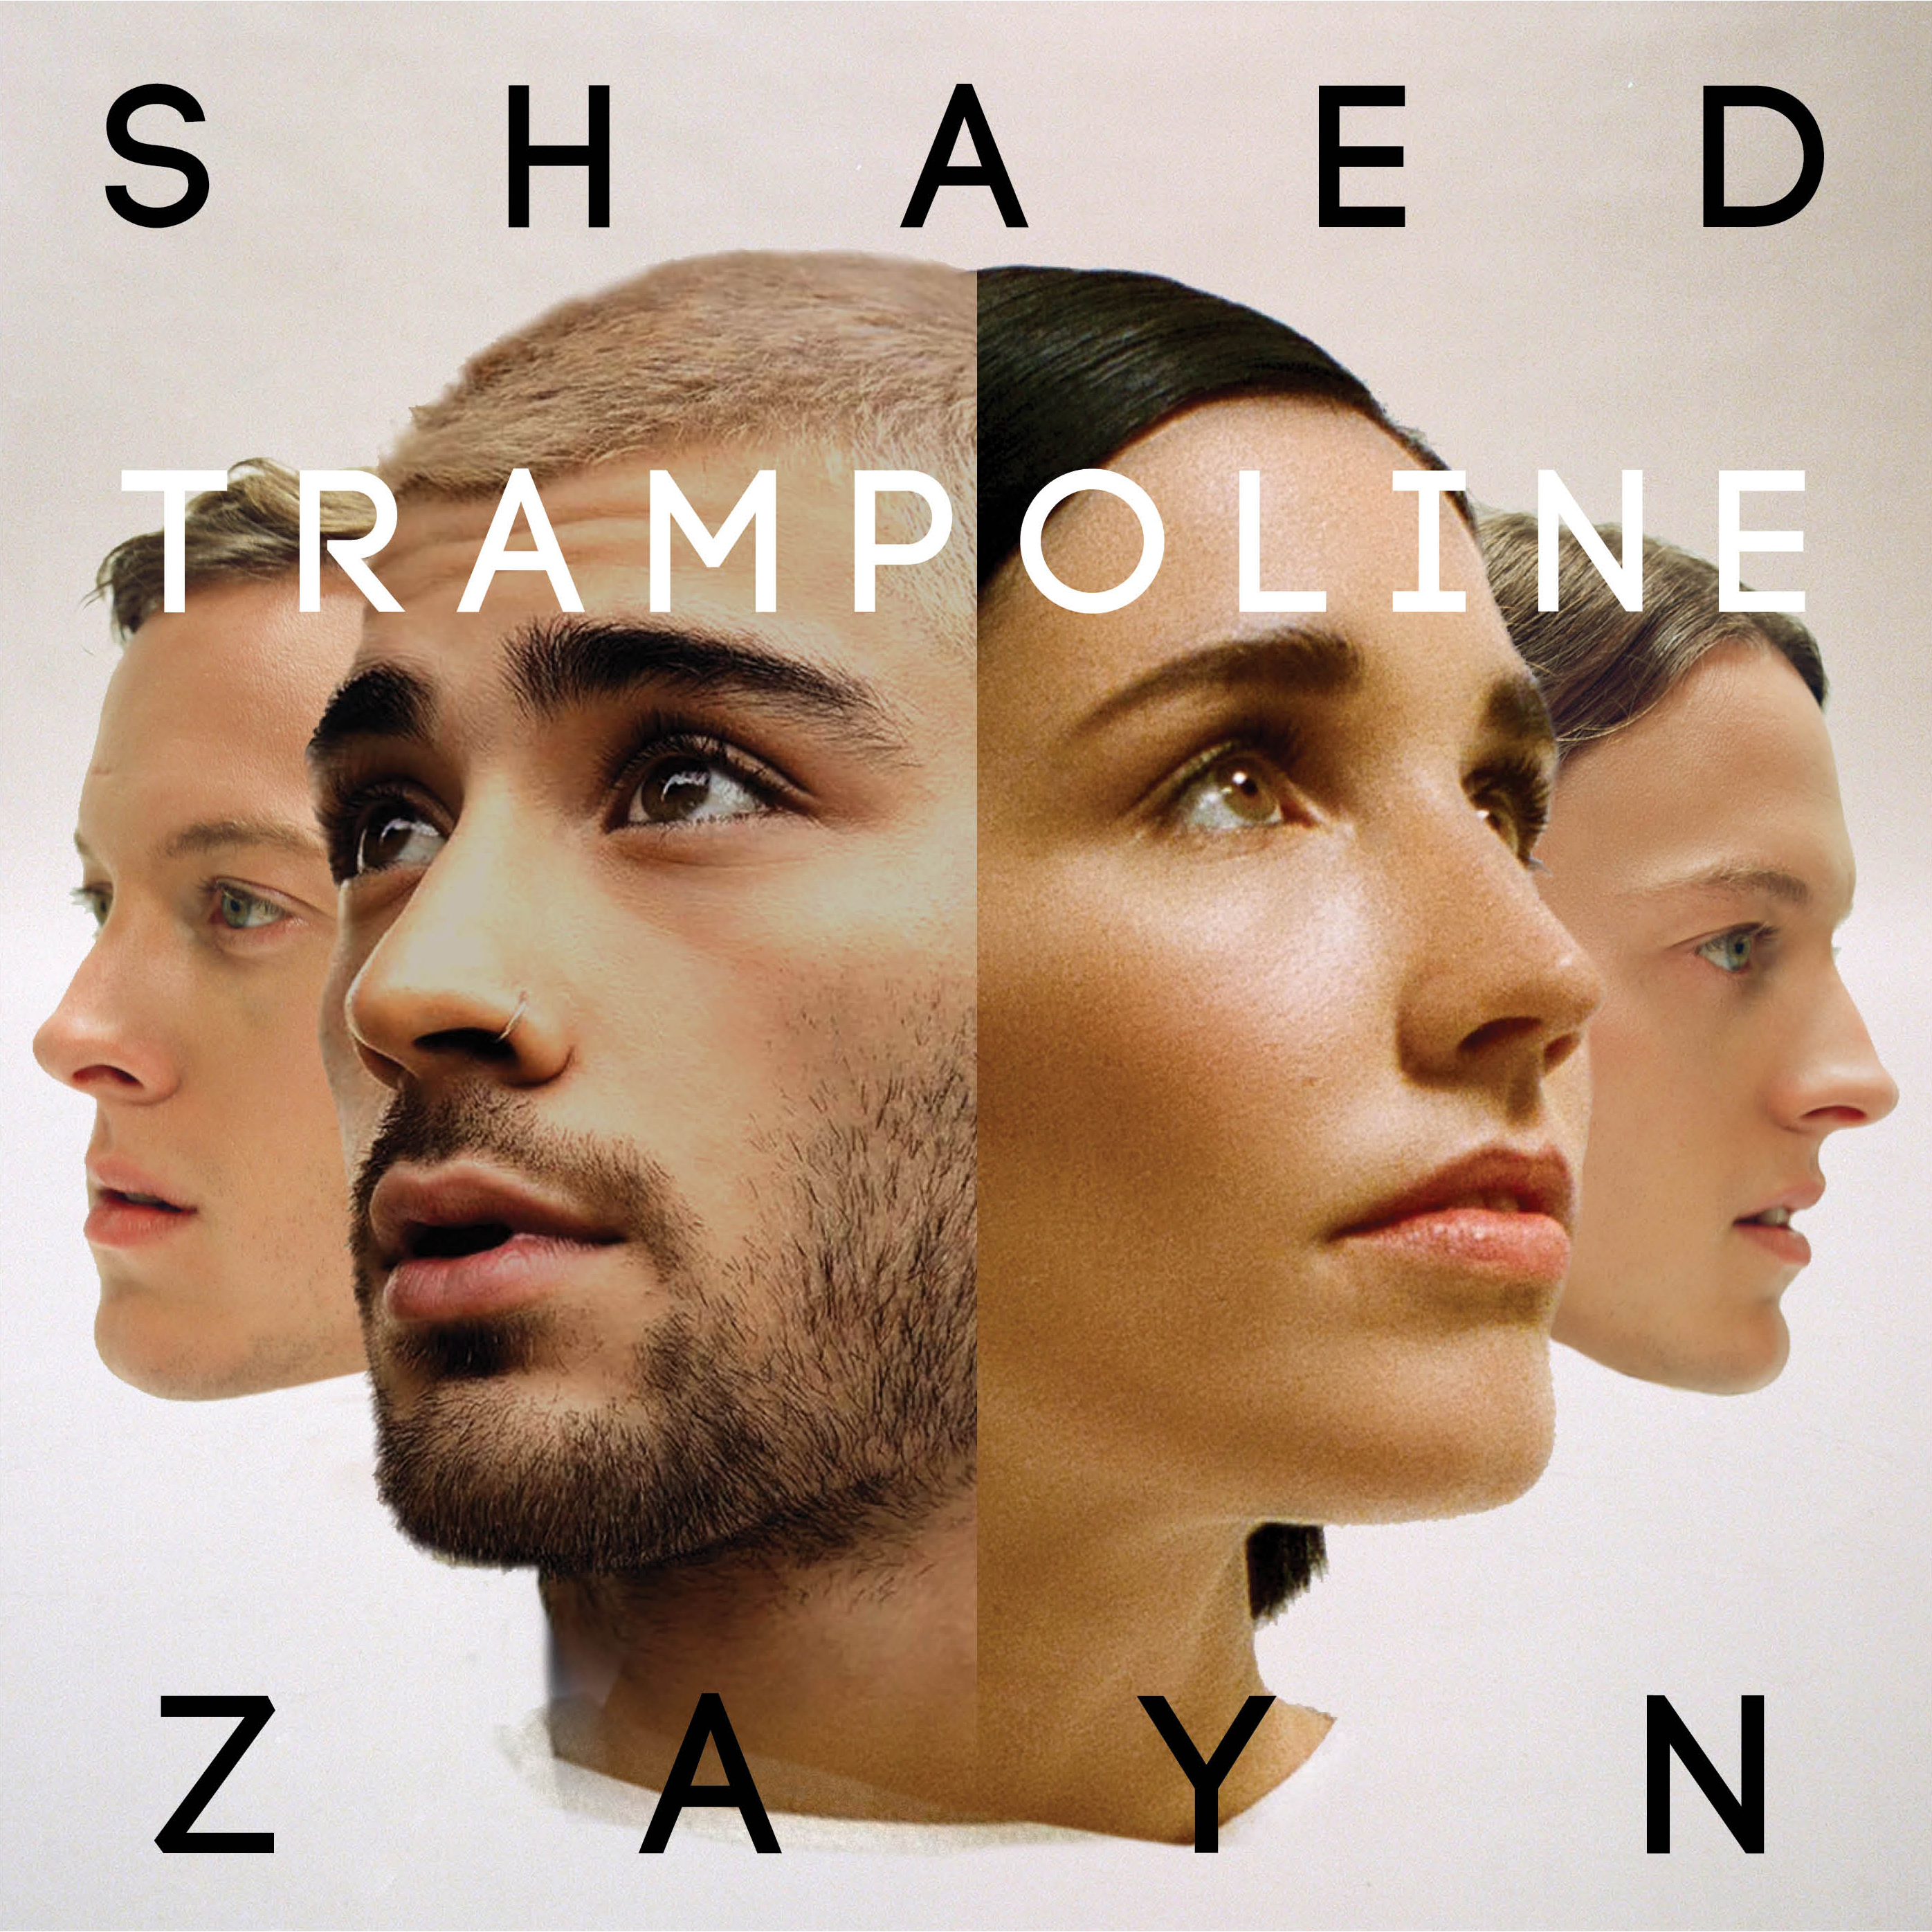 Shaed - Trampoline (ft Zayn)